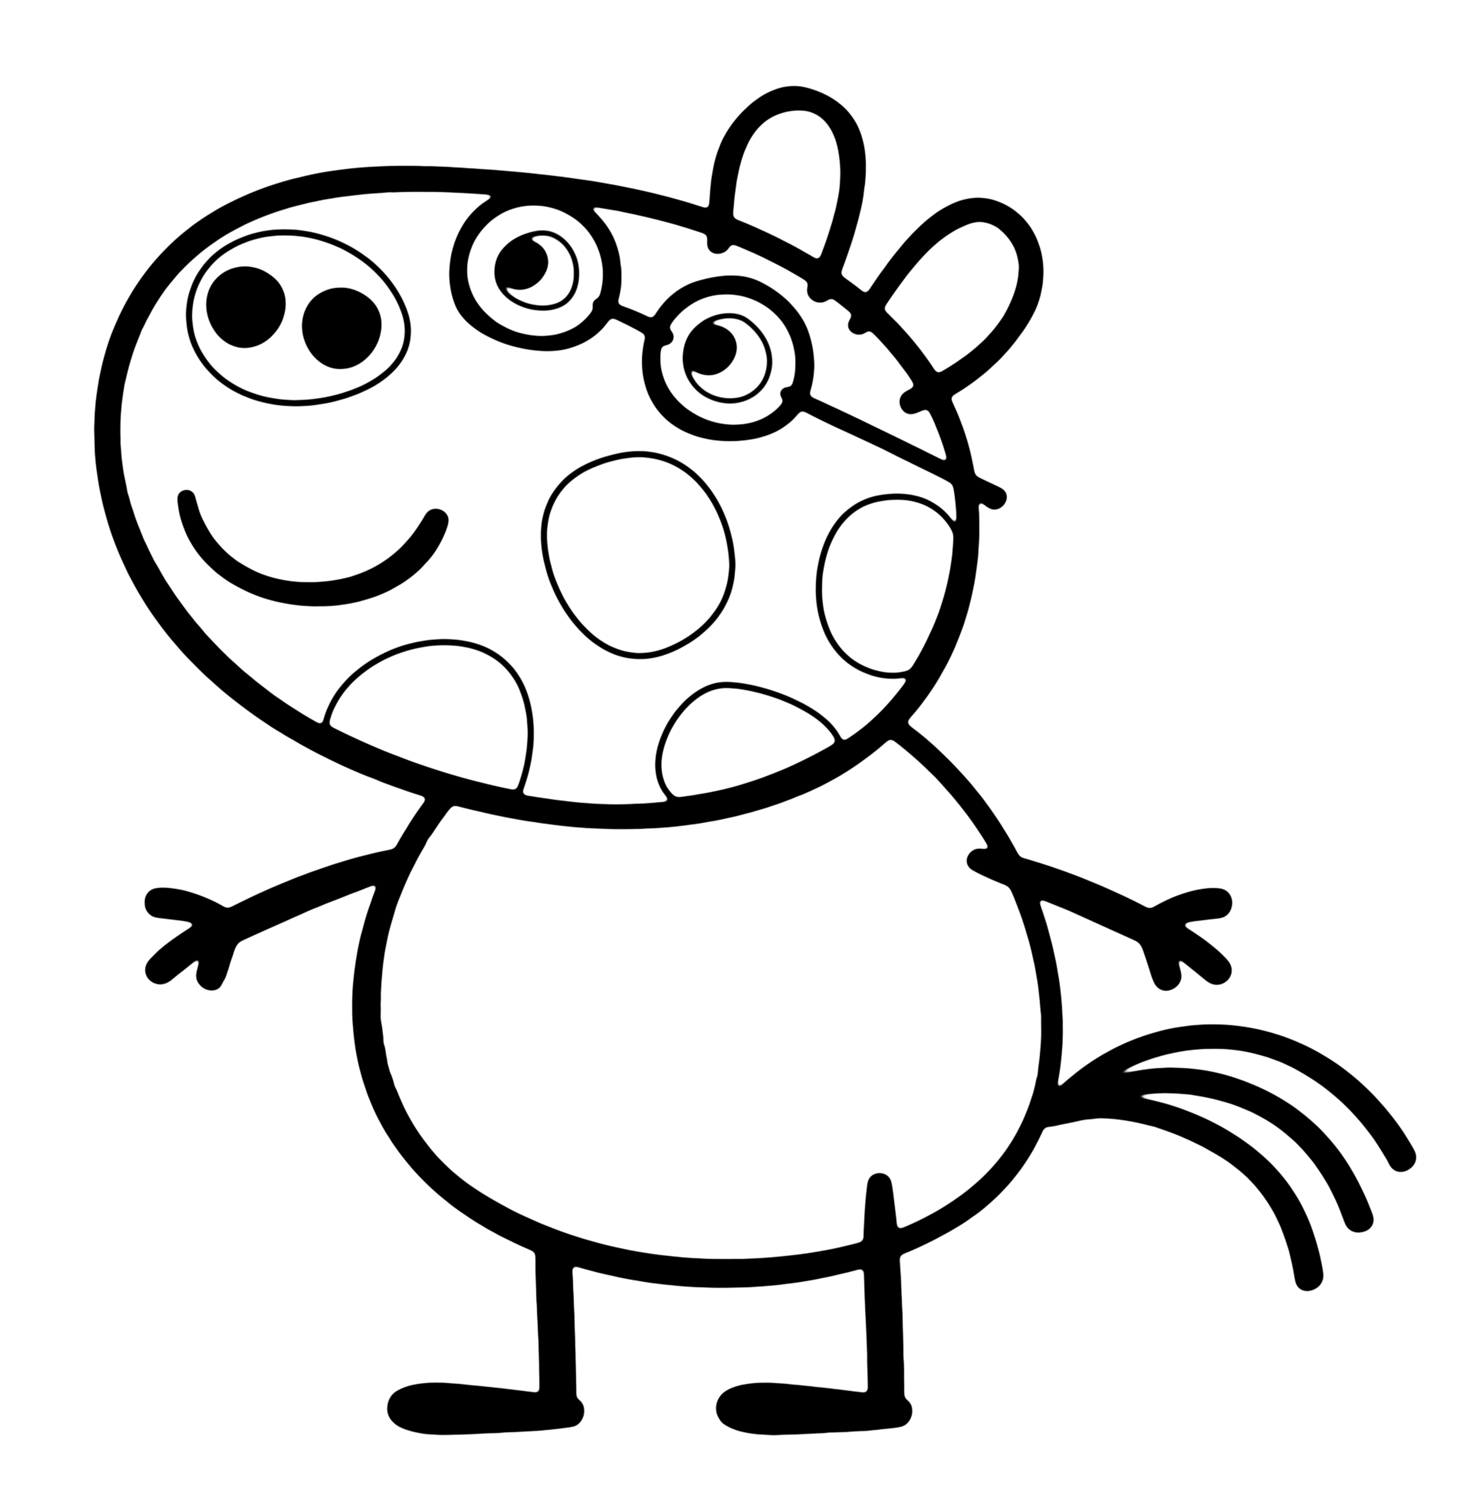 peppa pig pictures for colouring peppa pig pictures for colouring pig peppa colouring for pictures